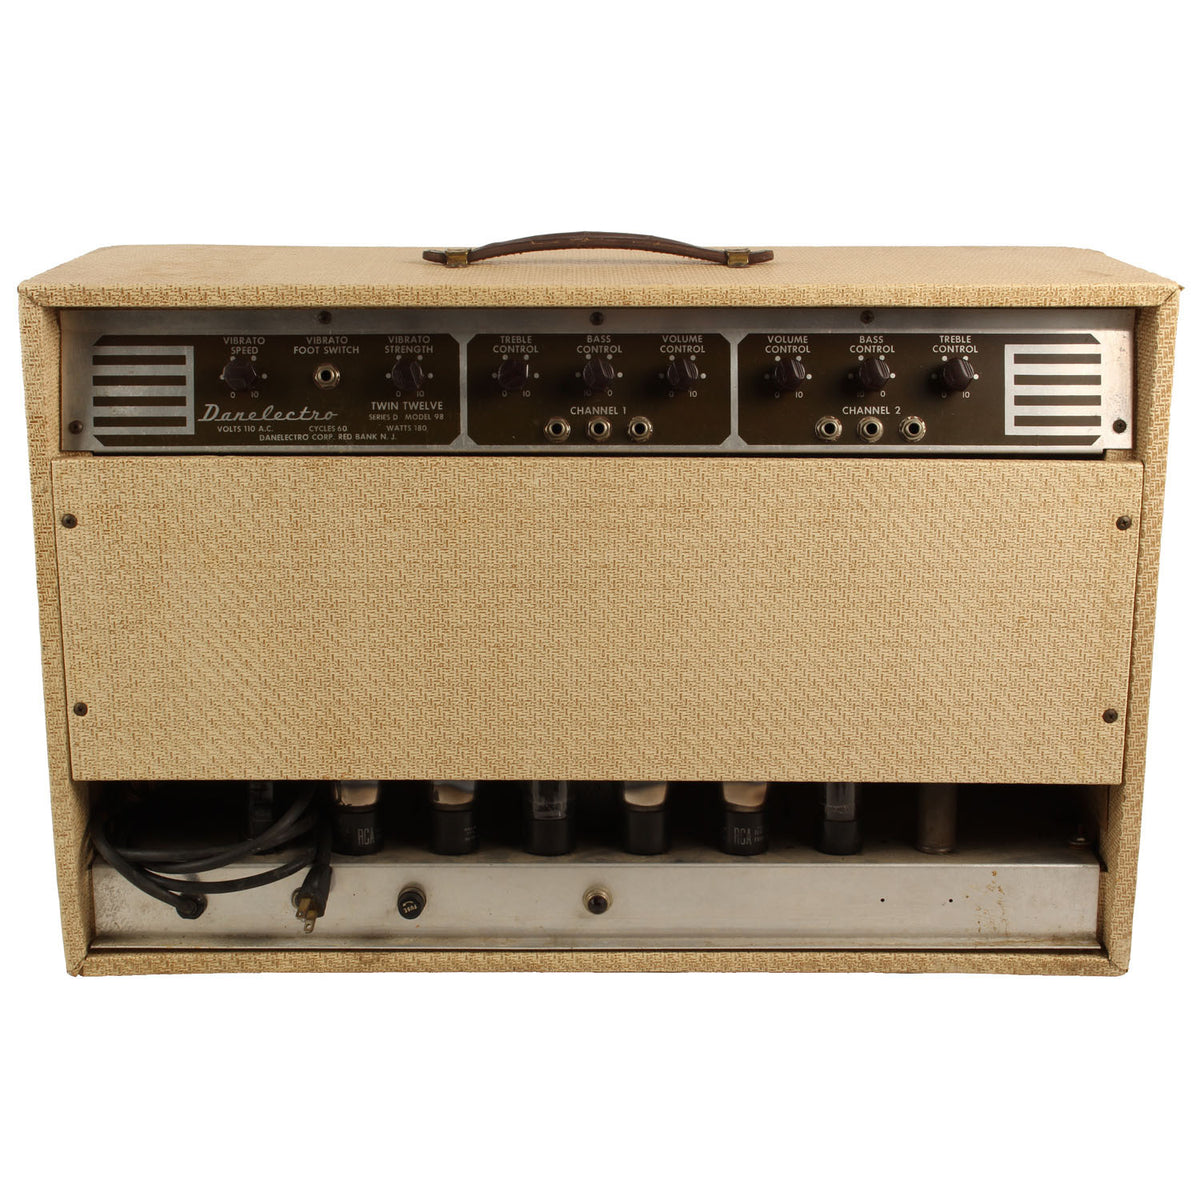 1956 Danelectro Model 98 Series D Twin Twelve Amplifier - Garrett Park Guitars  - 6